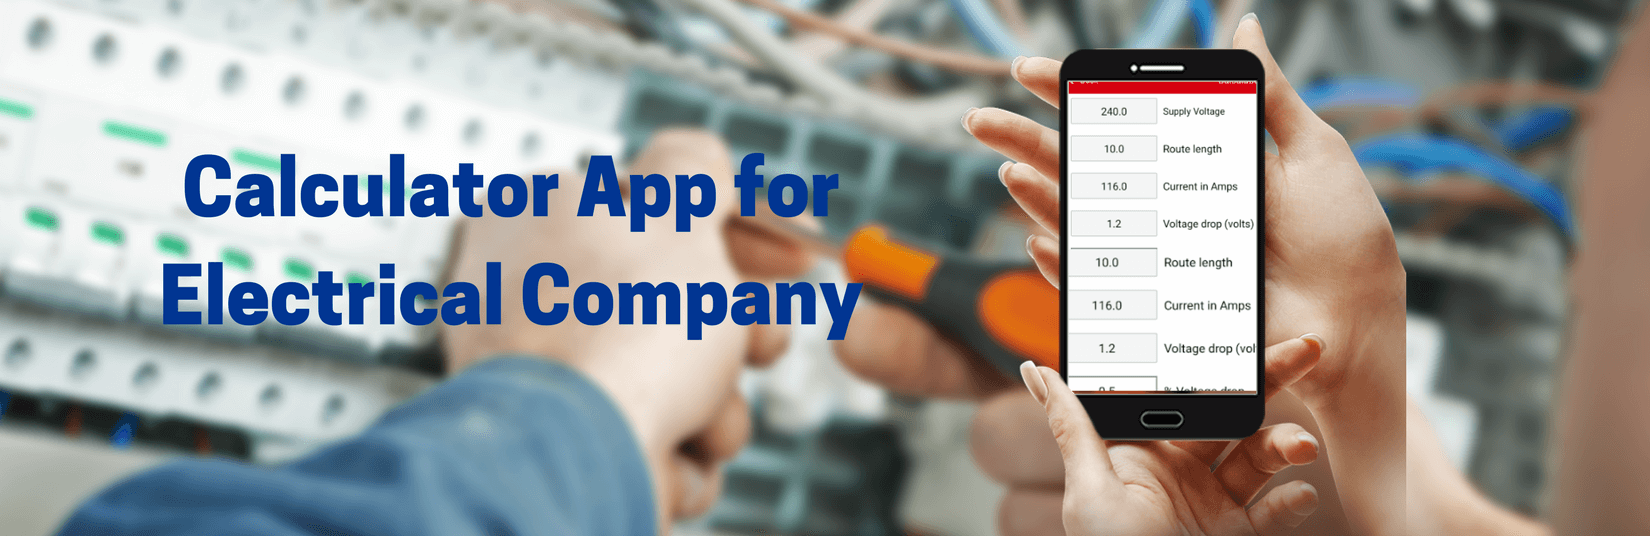 Calculator App for Electrical Company and Client Review